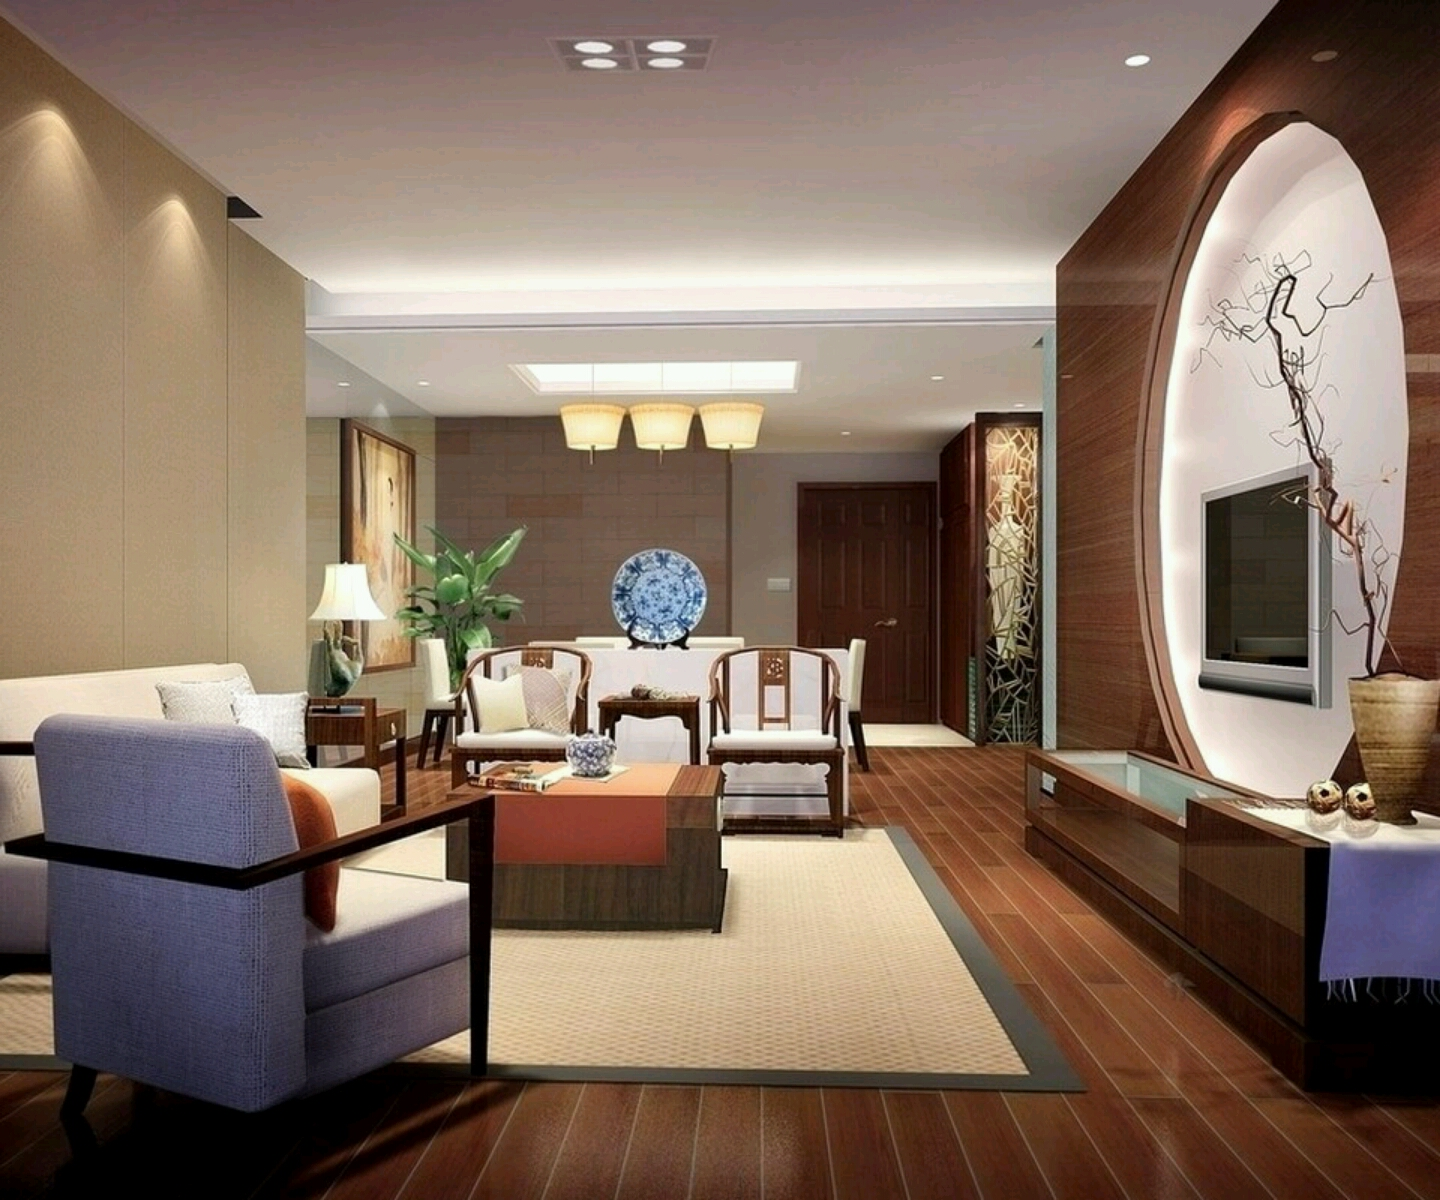 Luxury homes interior decoration living room designs ideas for Living room images ideas